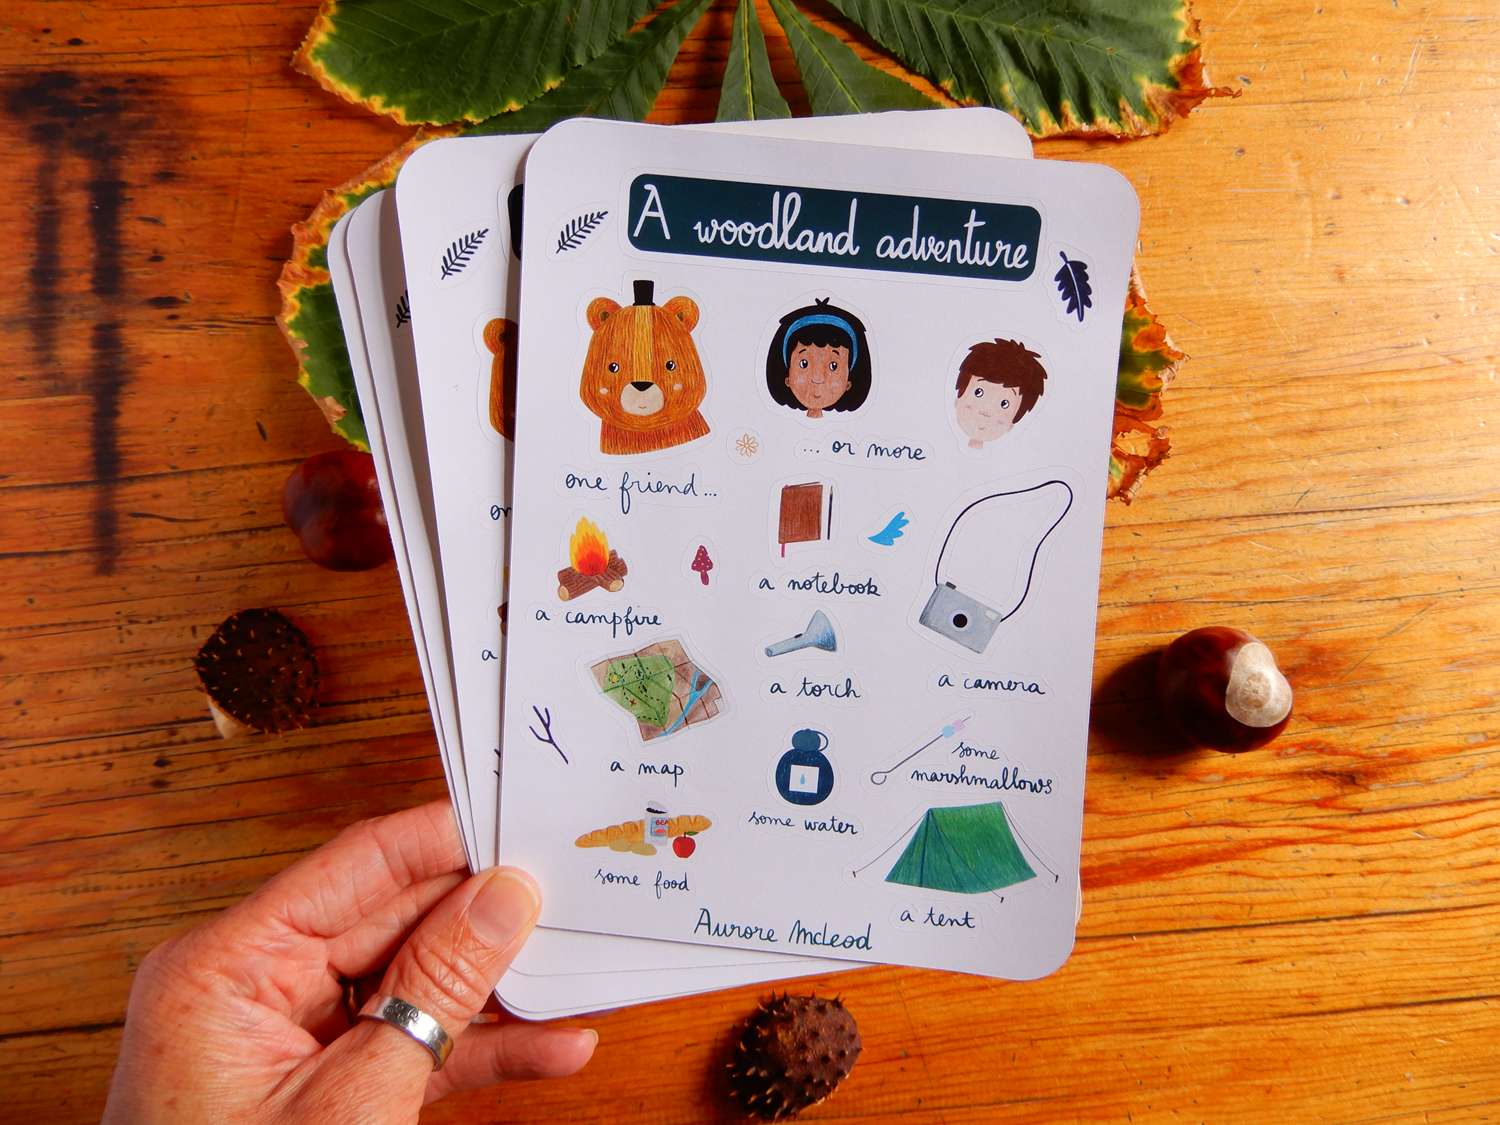 Camping adventure sticker sheet